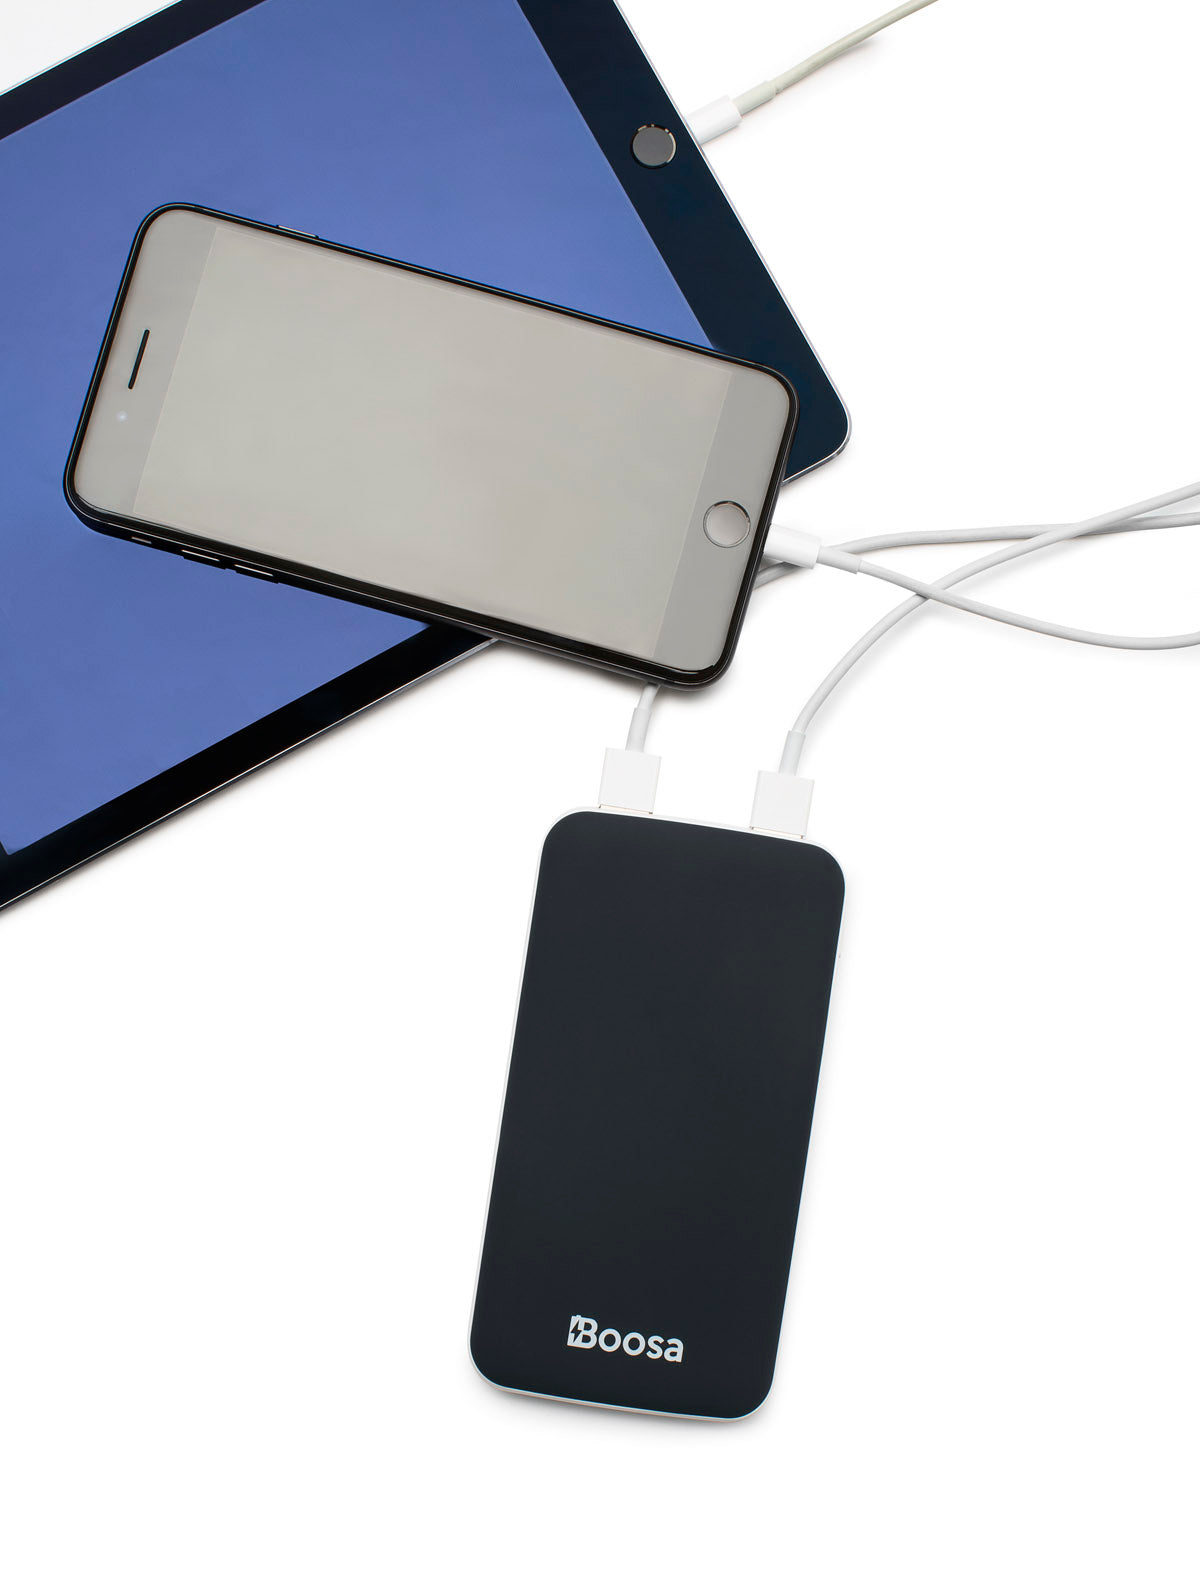 Boosa Macro™ Power Bank - Fast 10000mAh USB-C Portable Phone Charger for iPhone and Android